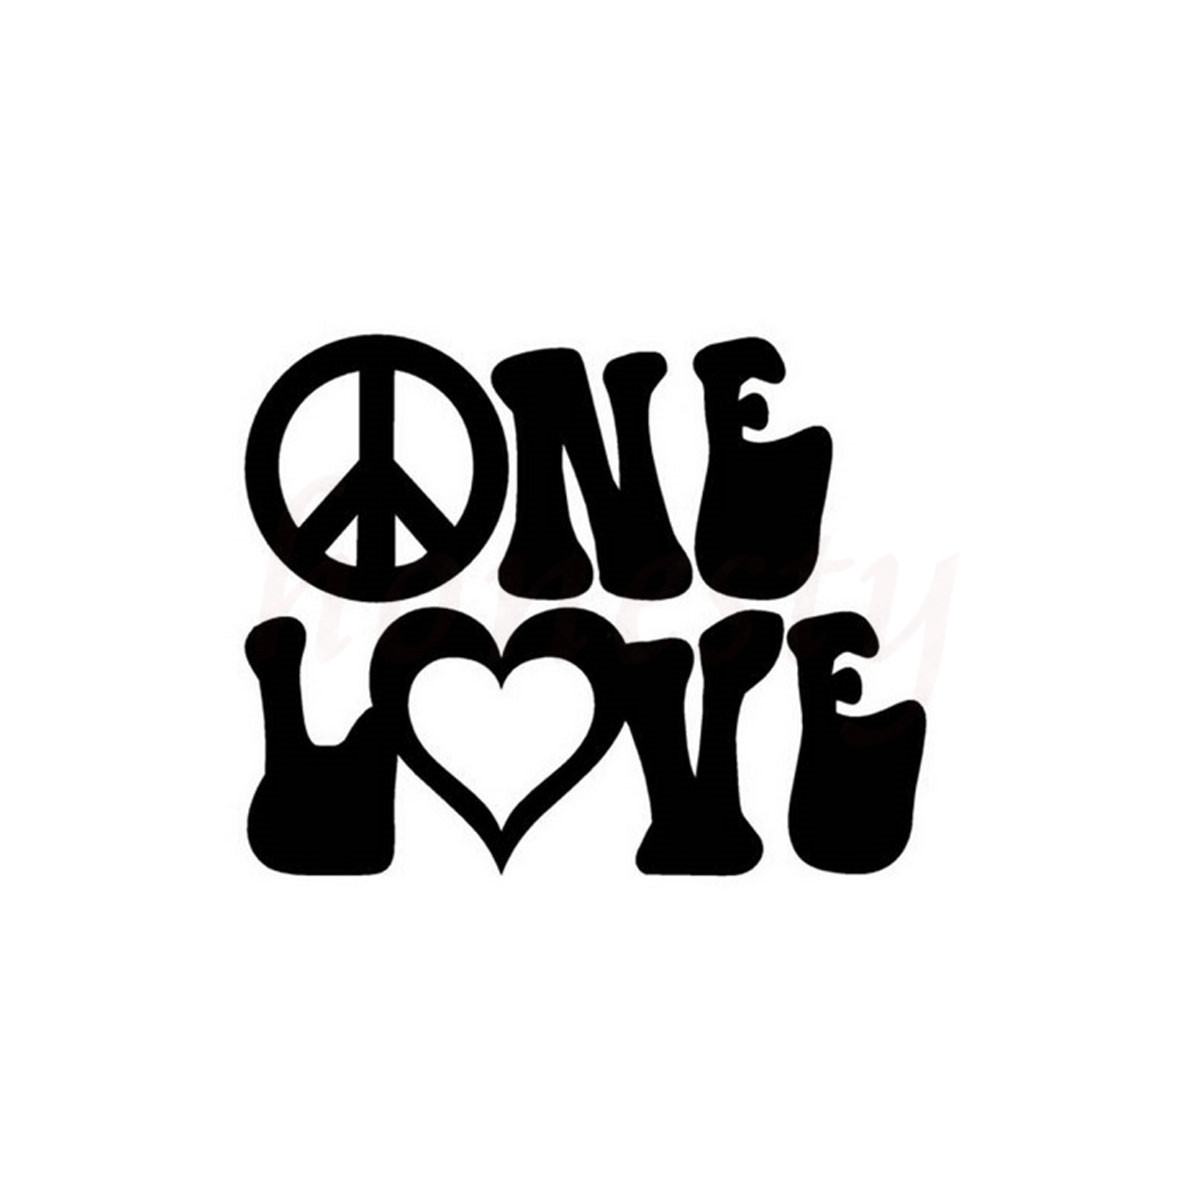 Letter Peace Loving LOV Vinyl ONE Car Stickers Wall Home Glass Window Door Laptop Auto Truck Black Vinyl Decal 14.3cmX11.5cm